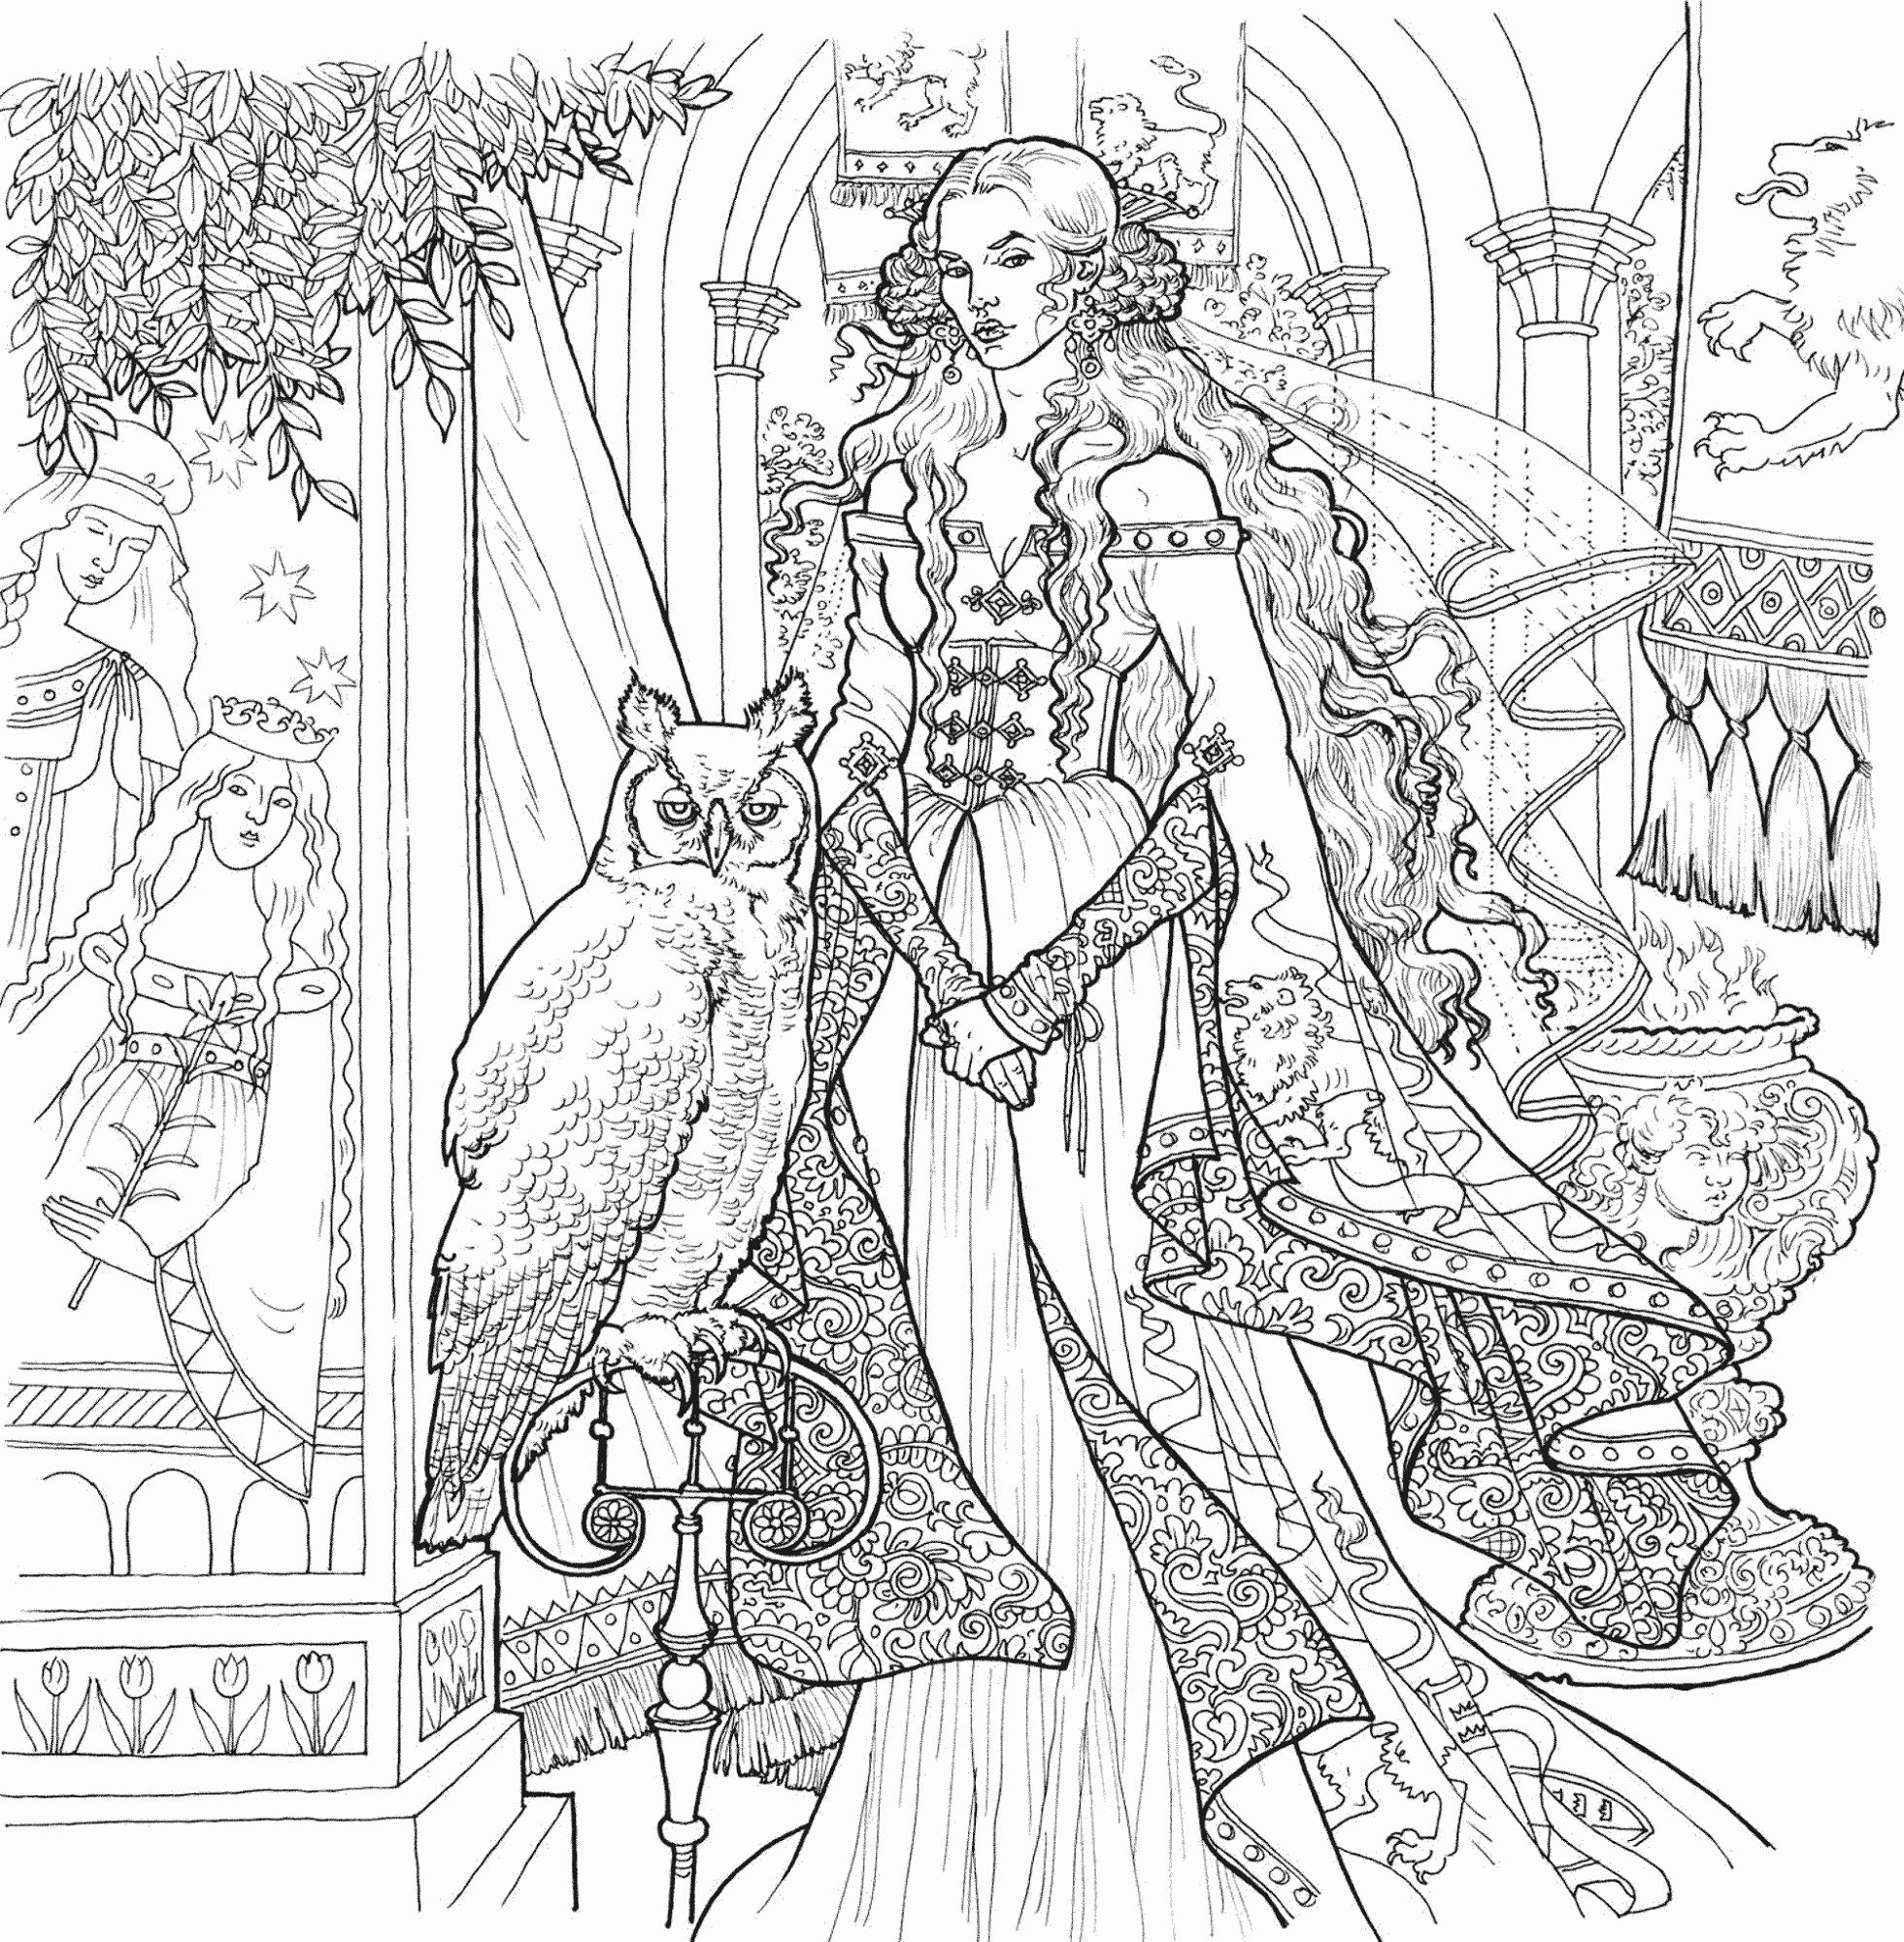 game of thrones coloring pages livre coloriage game of thrones imprimer et obtenir une of pages game thrones coloring